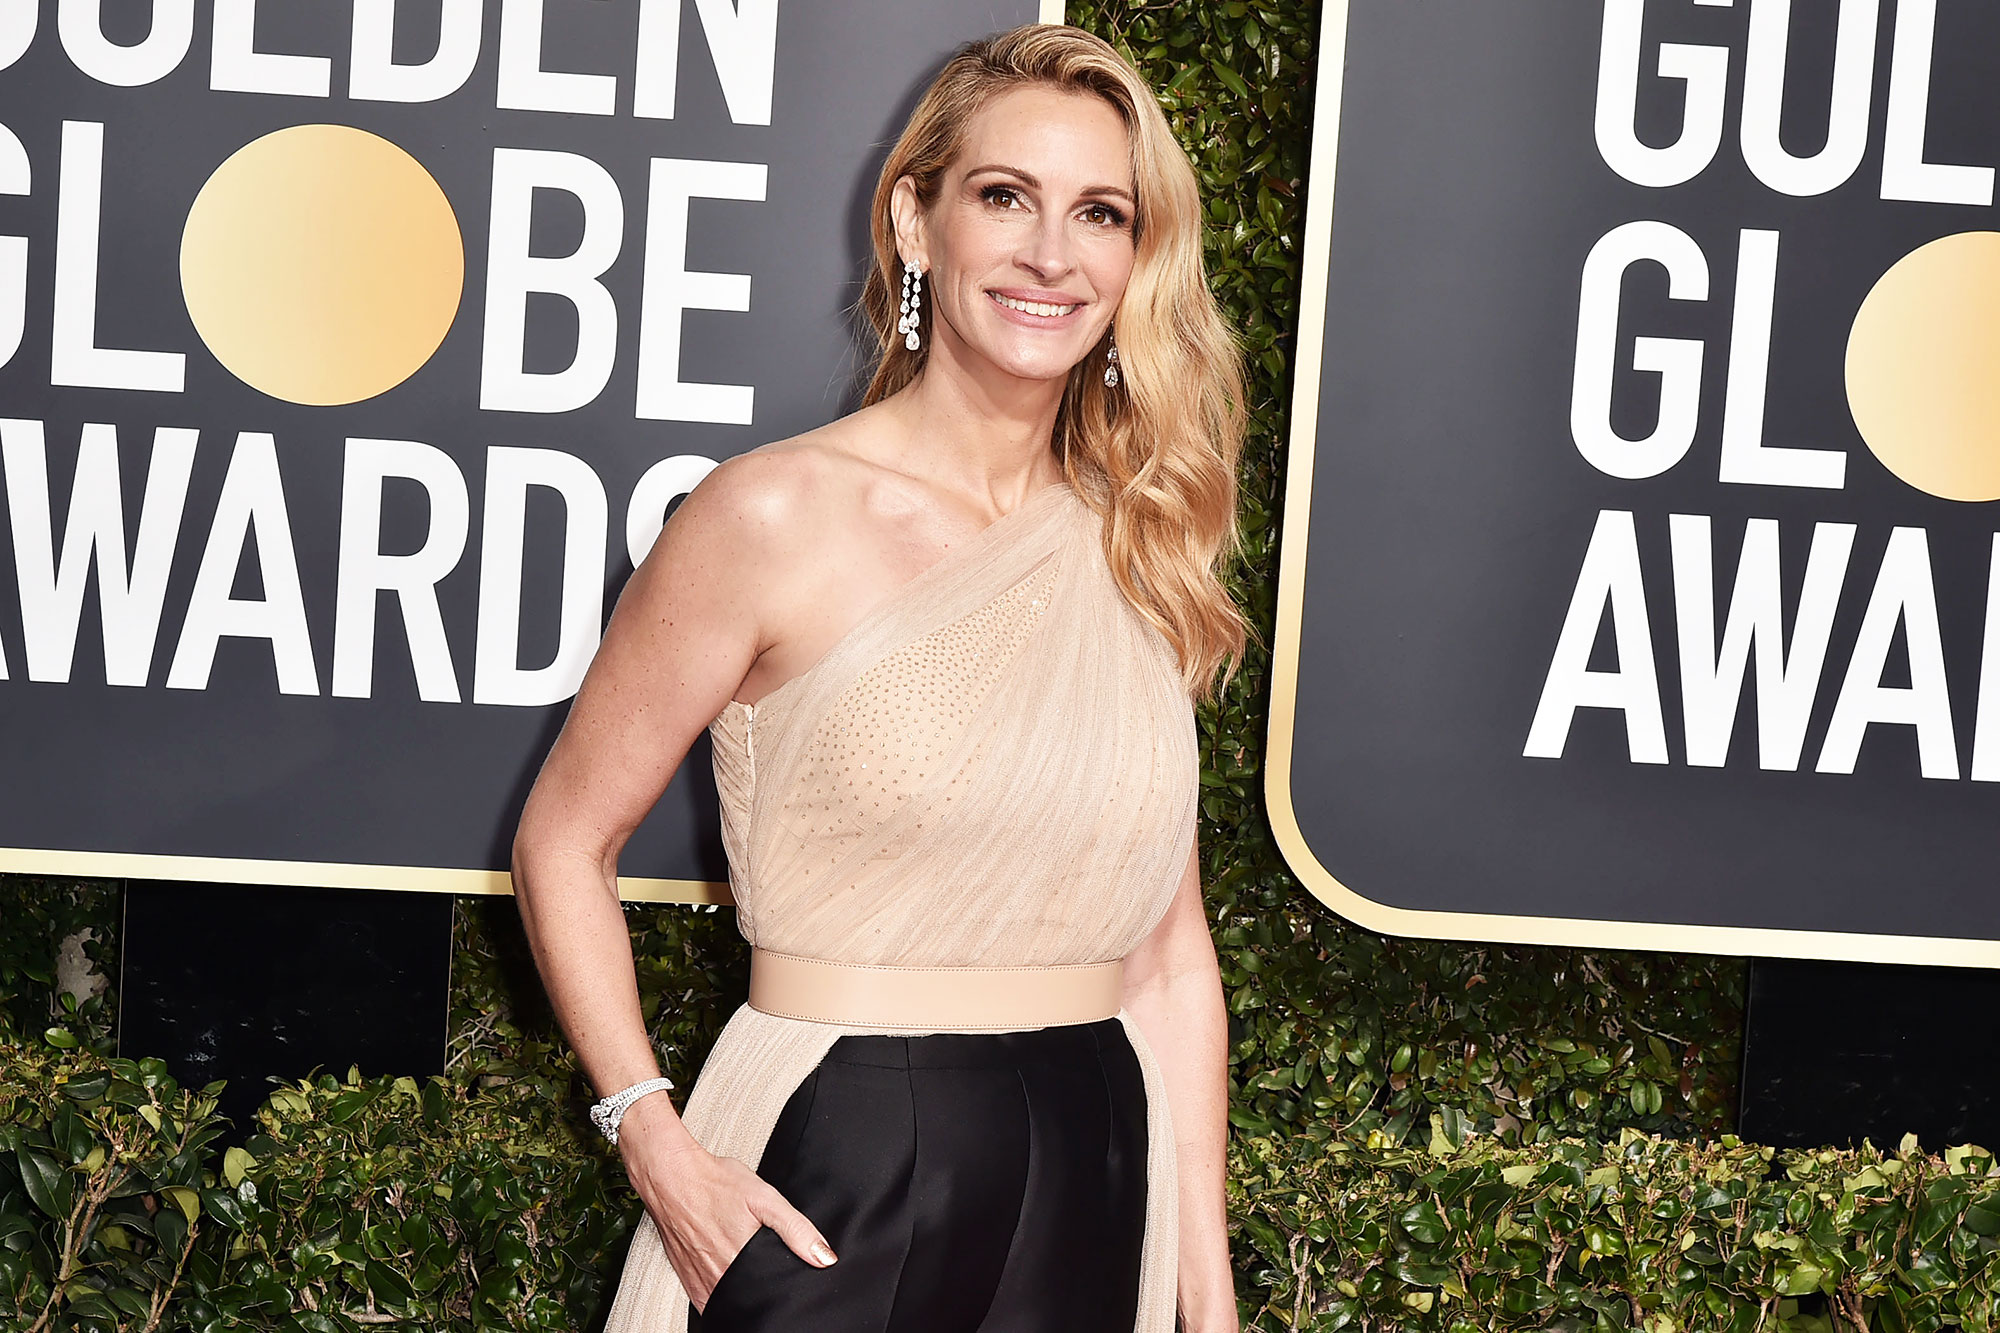 Julia Roberts Complexion Golden Globes - Julia Roberts attends the 76th Annual Golden Globe Awards at The Beverly Hilton Hotel on January 06, 2019 in Beverly Hills, California.